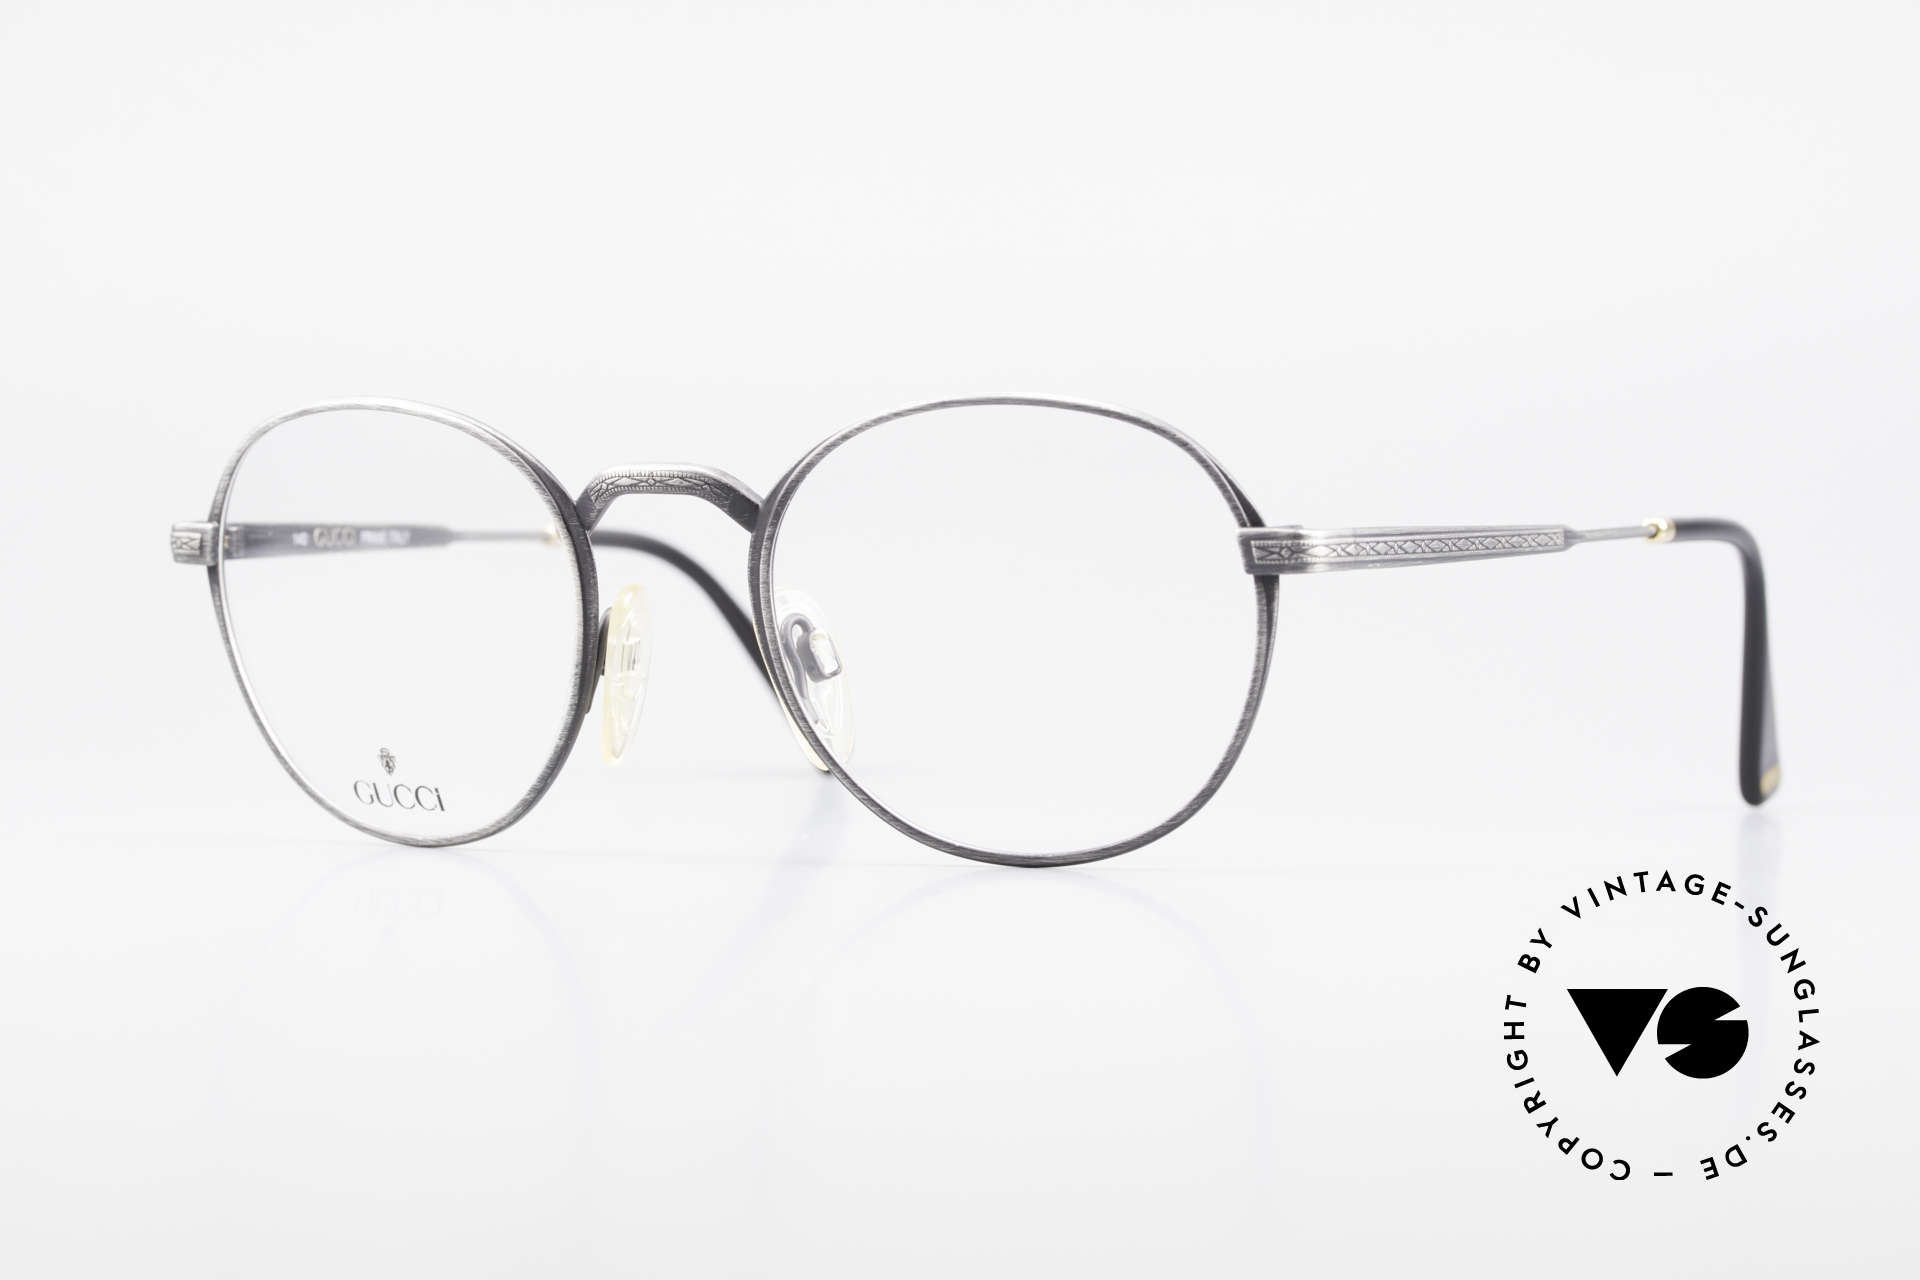 Gucci 1226 Classic 80's Panto Eyeglasses, classic vintage designer eyeglasses by GUCCI, Made for Men and Women